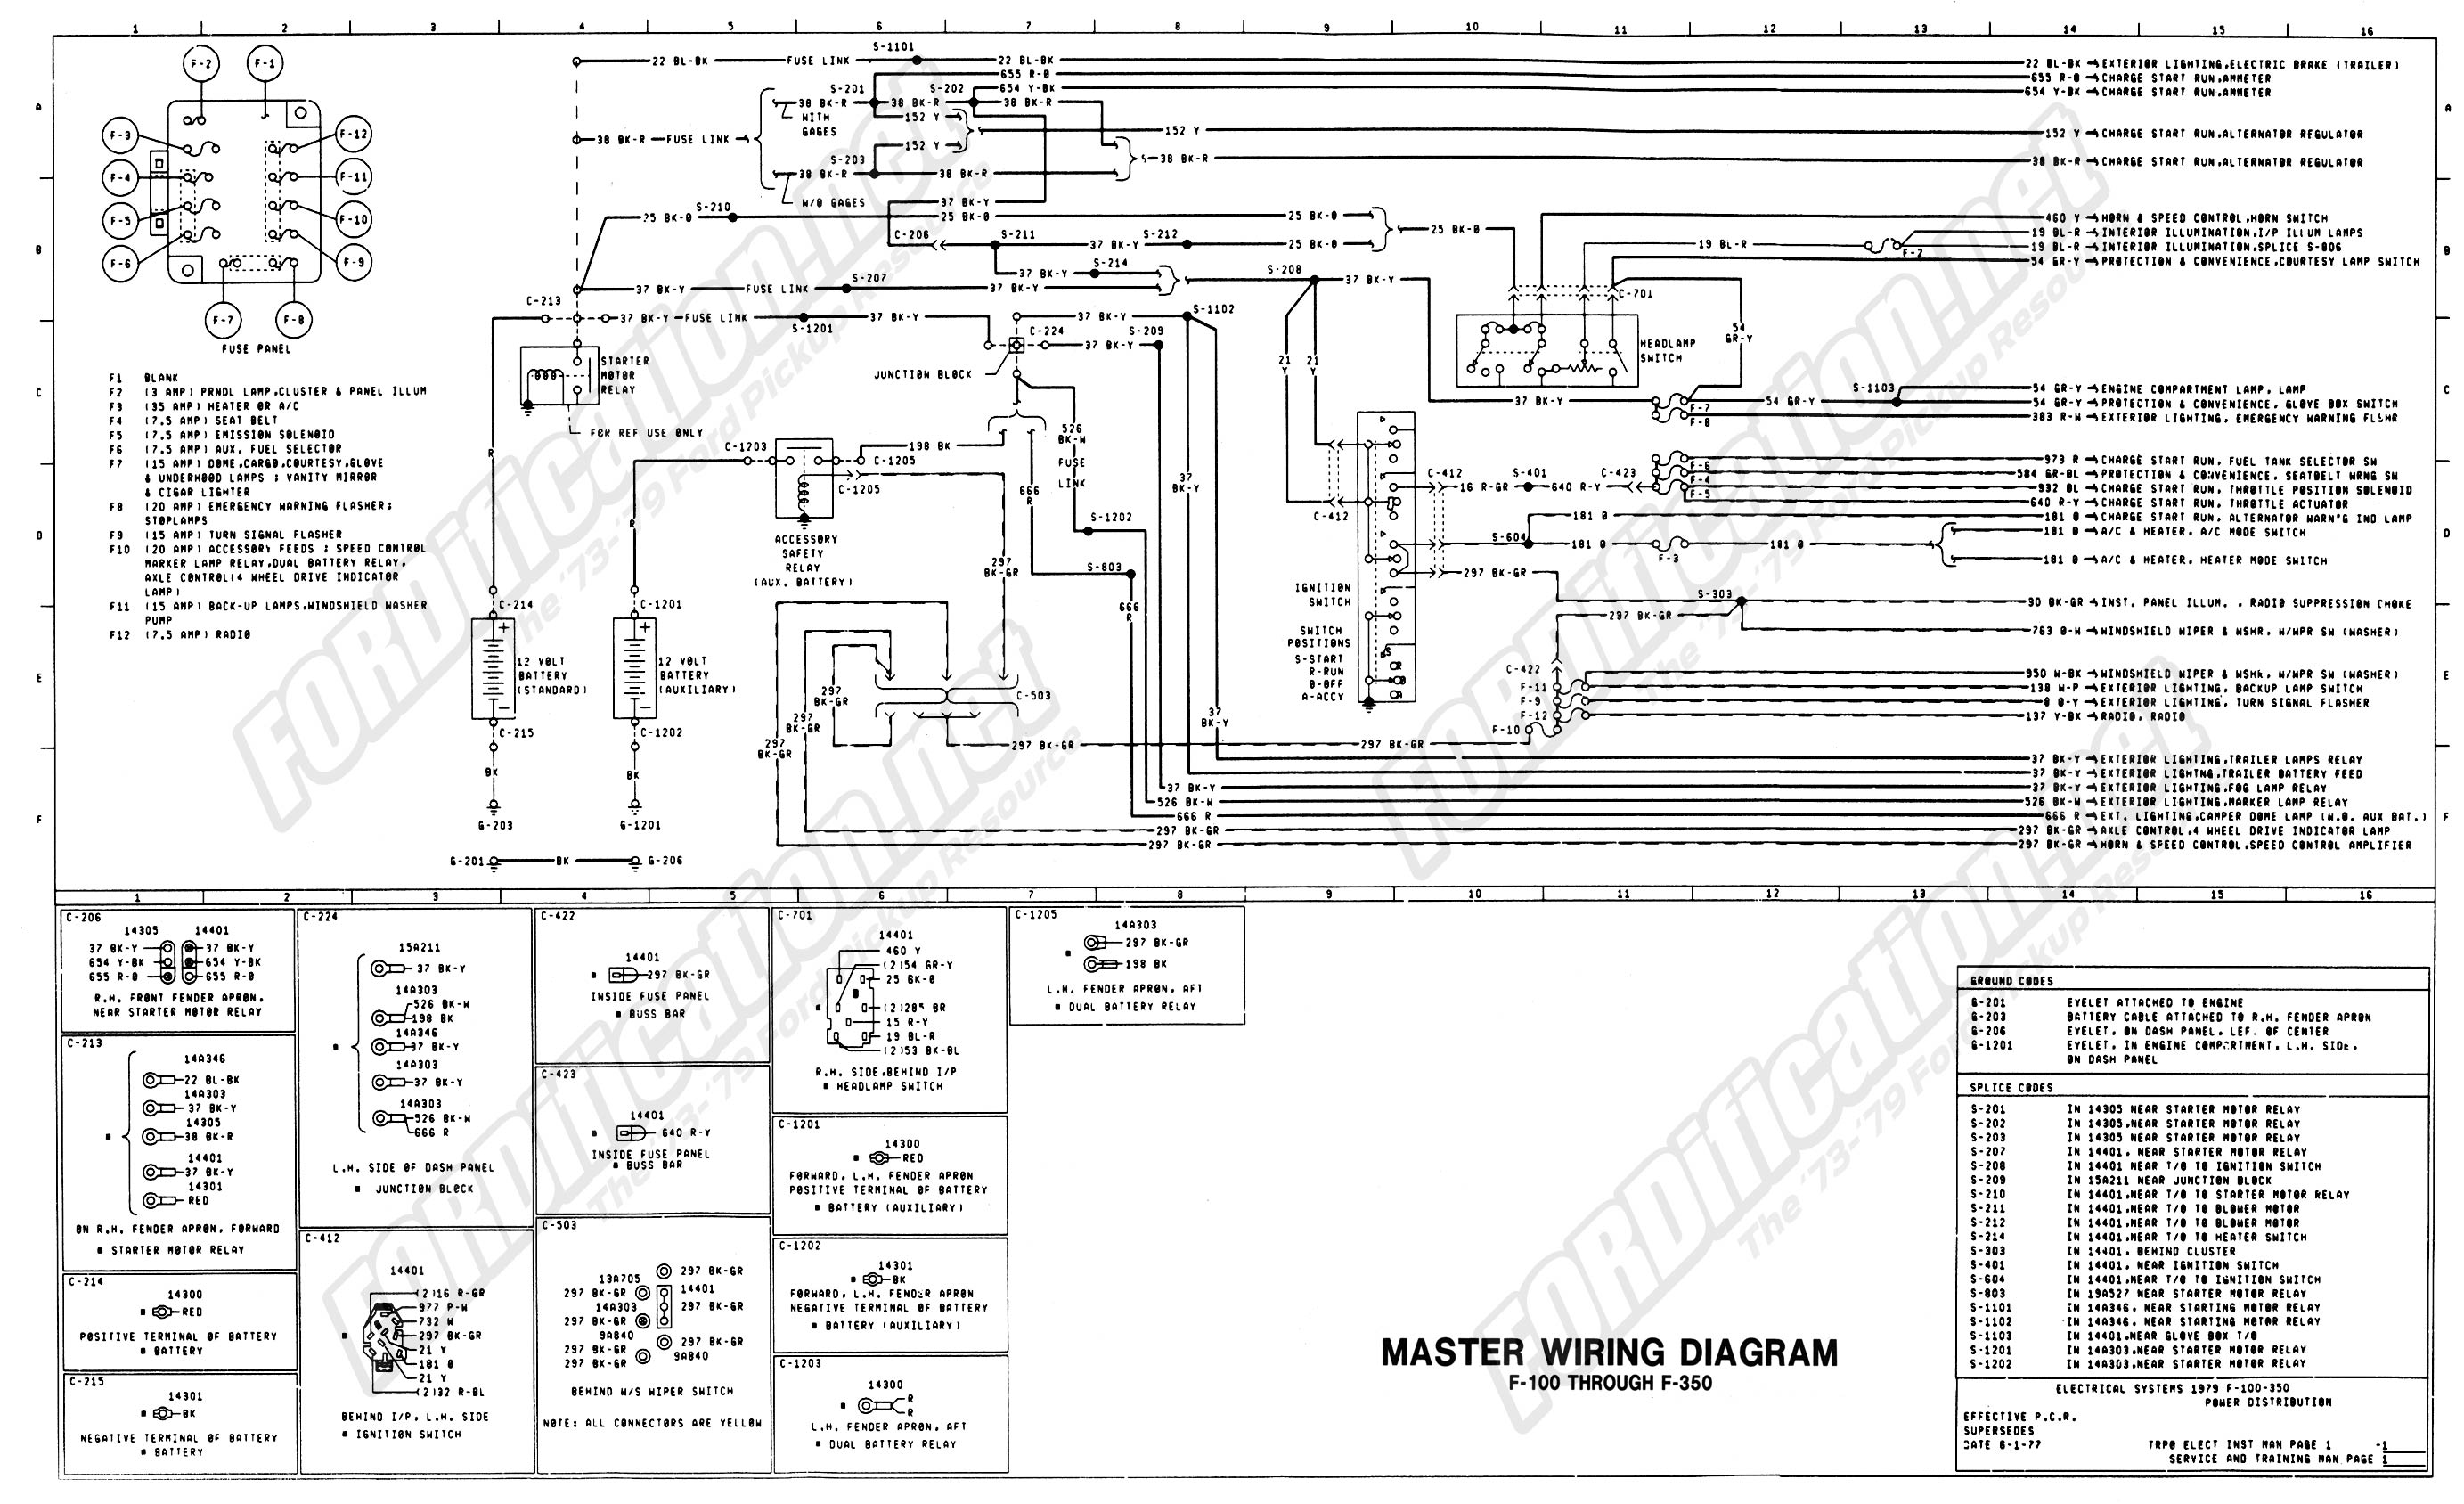 wiring_79master_1of9 1973 1979 ford truck wiring diagrams & schematics fordification net ford truck wiring schematics at bayanpartner.co